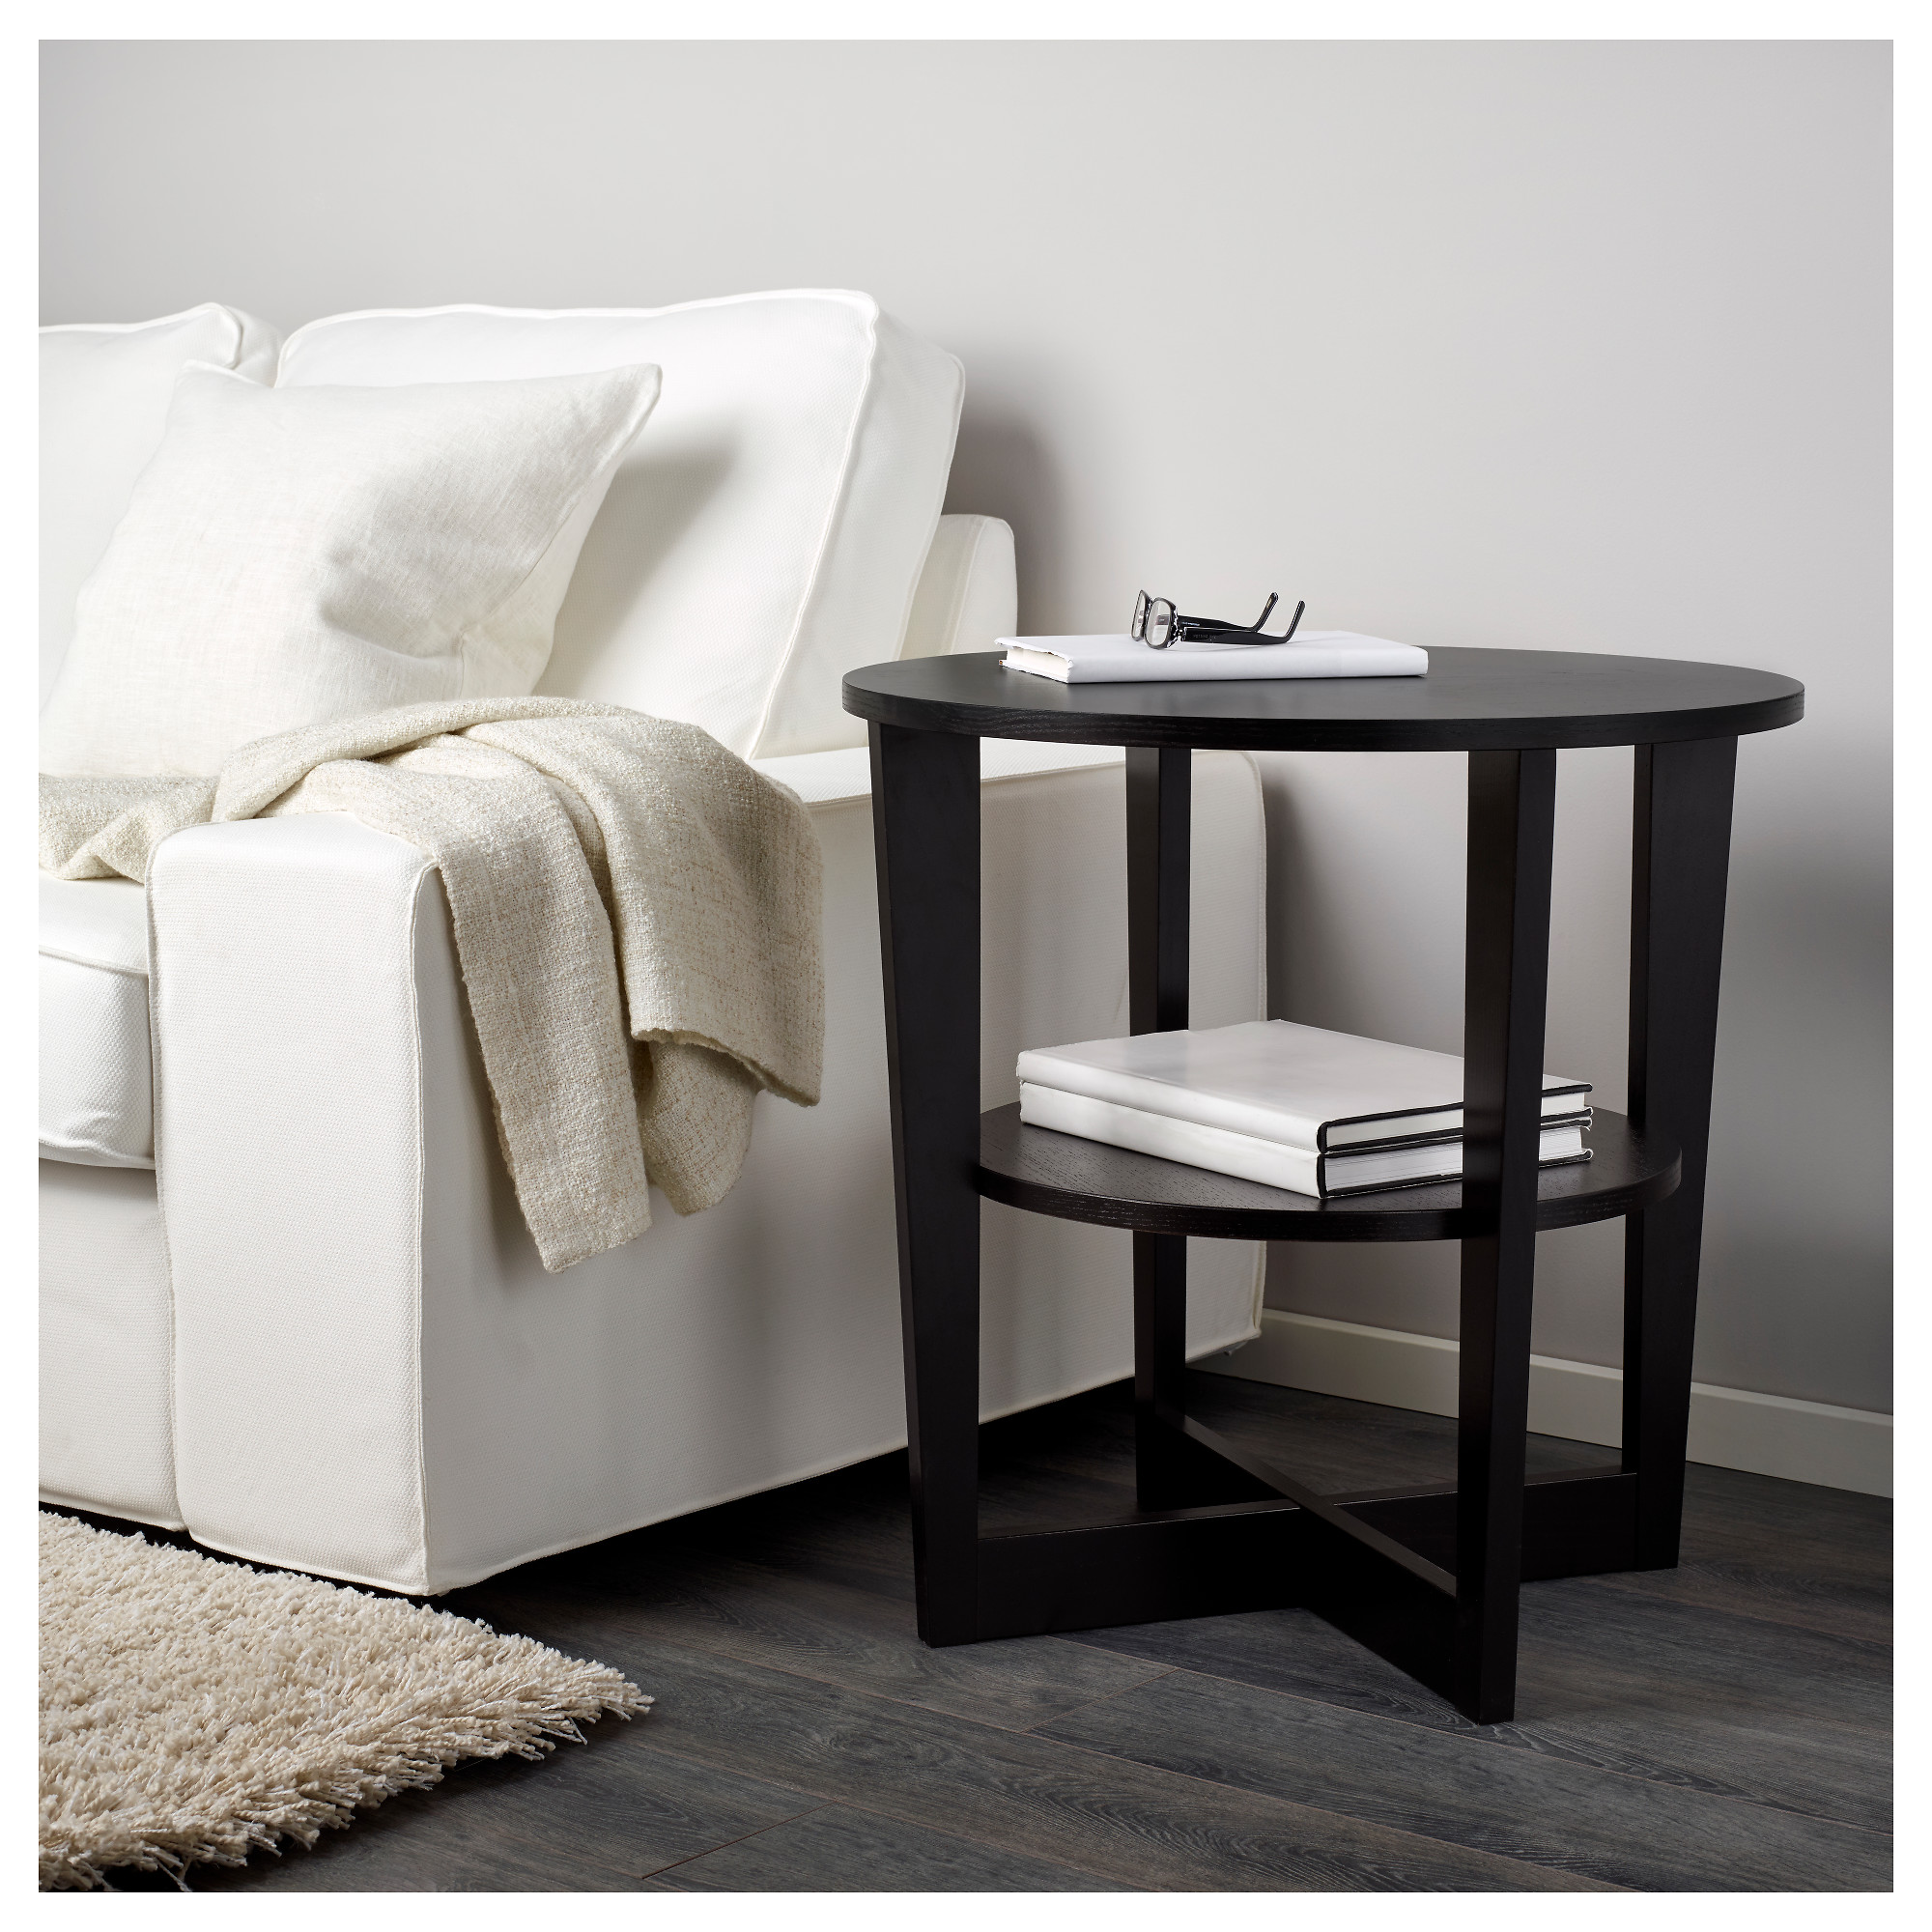 VEJMON Side Table   Black Brown   IKEA